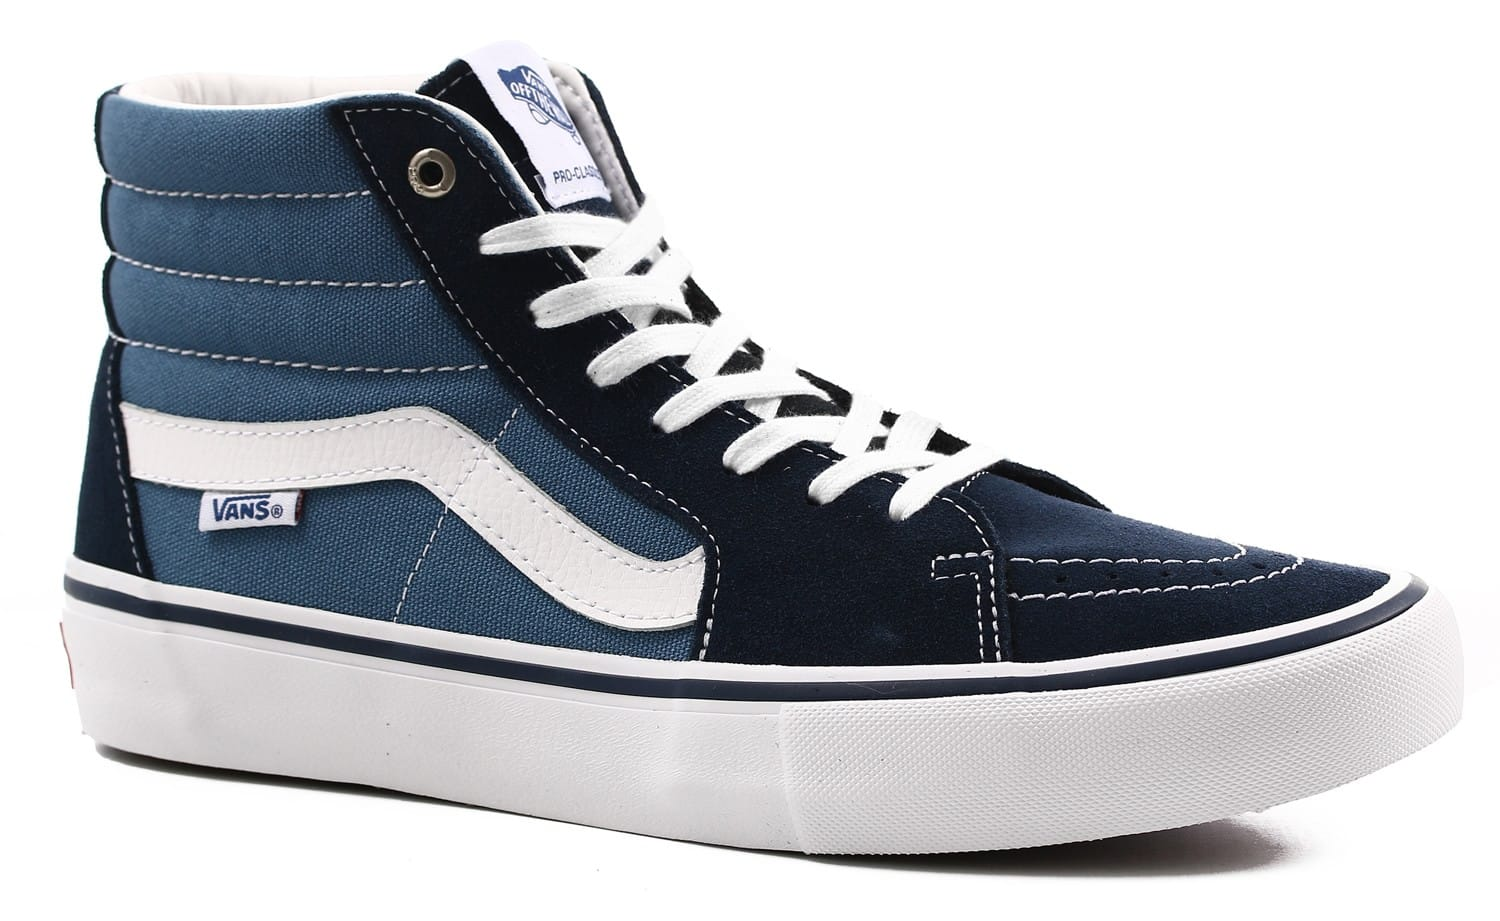 Vans Girls Shoes Navy Size